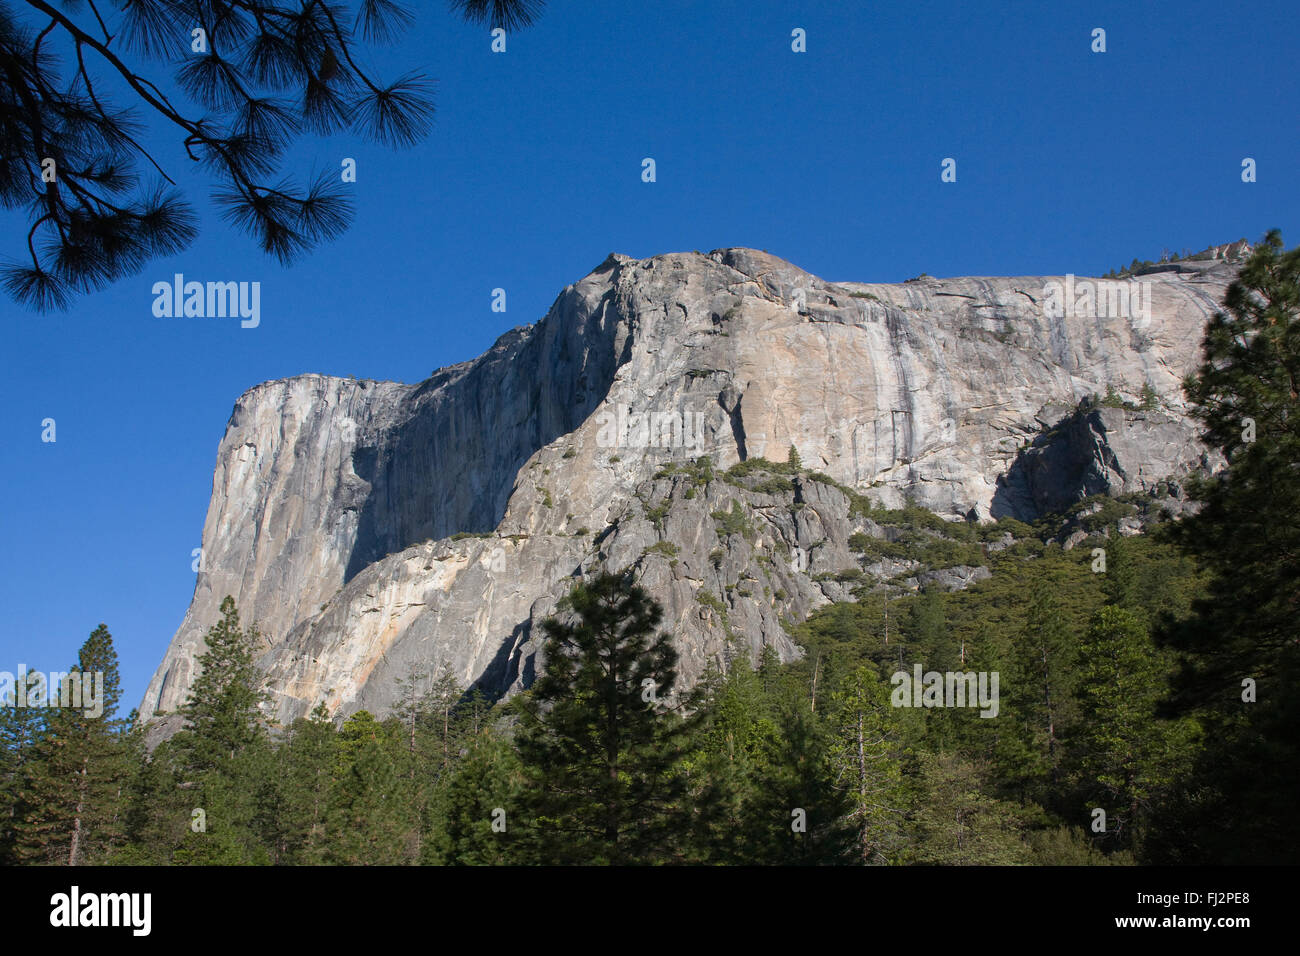 EVERGREEN TREES below EL CAPITAN in the YOSEMITE VALLEY - YOSEMITE NATIONAL PARK, CALIFORNIA - Stock Image